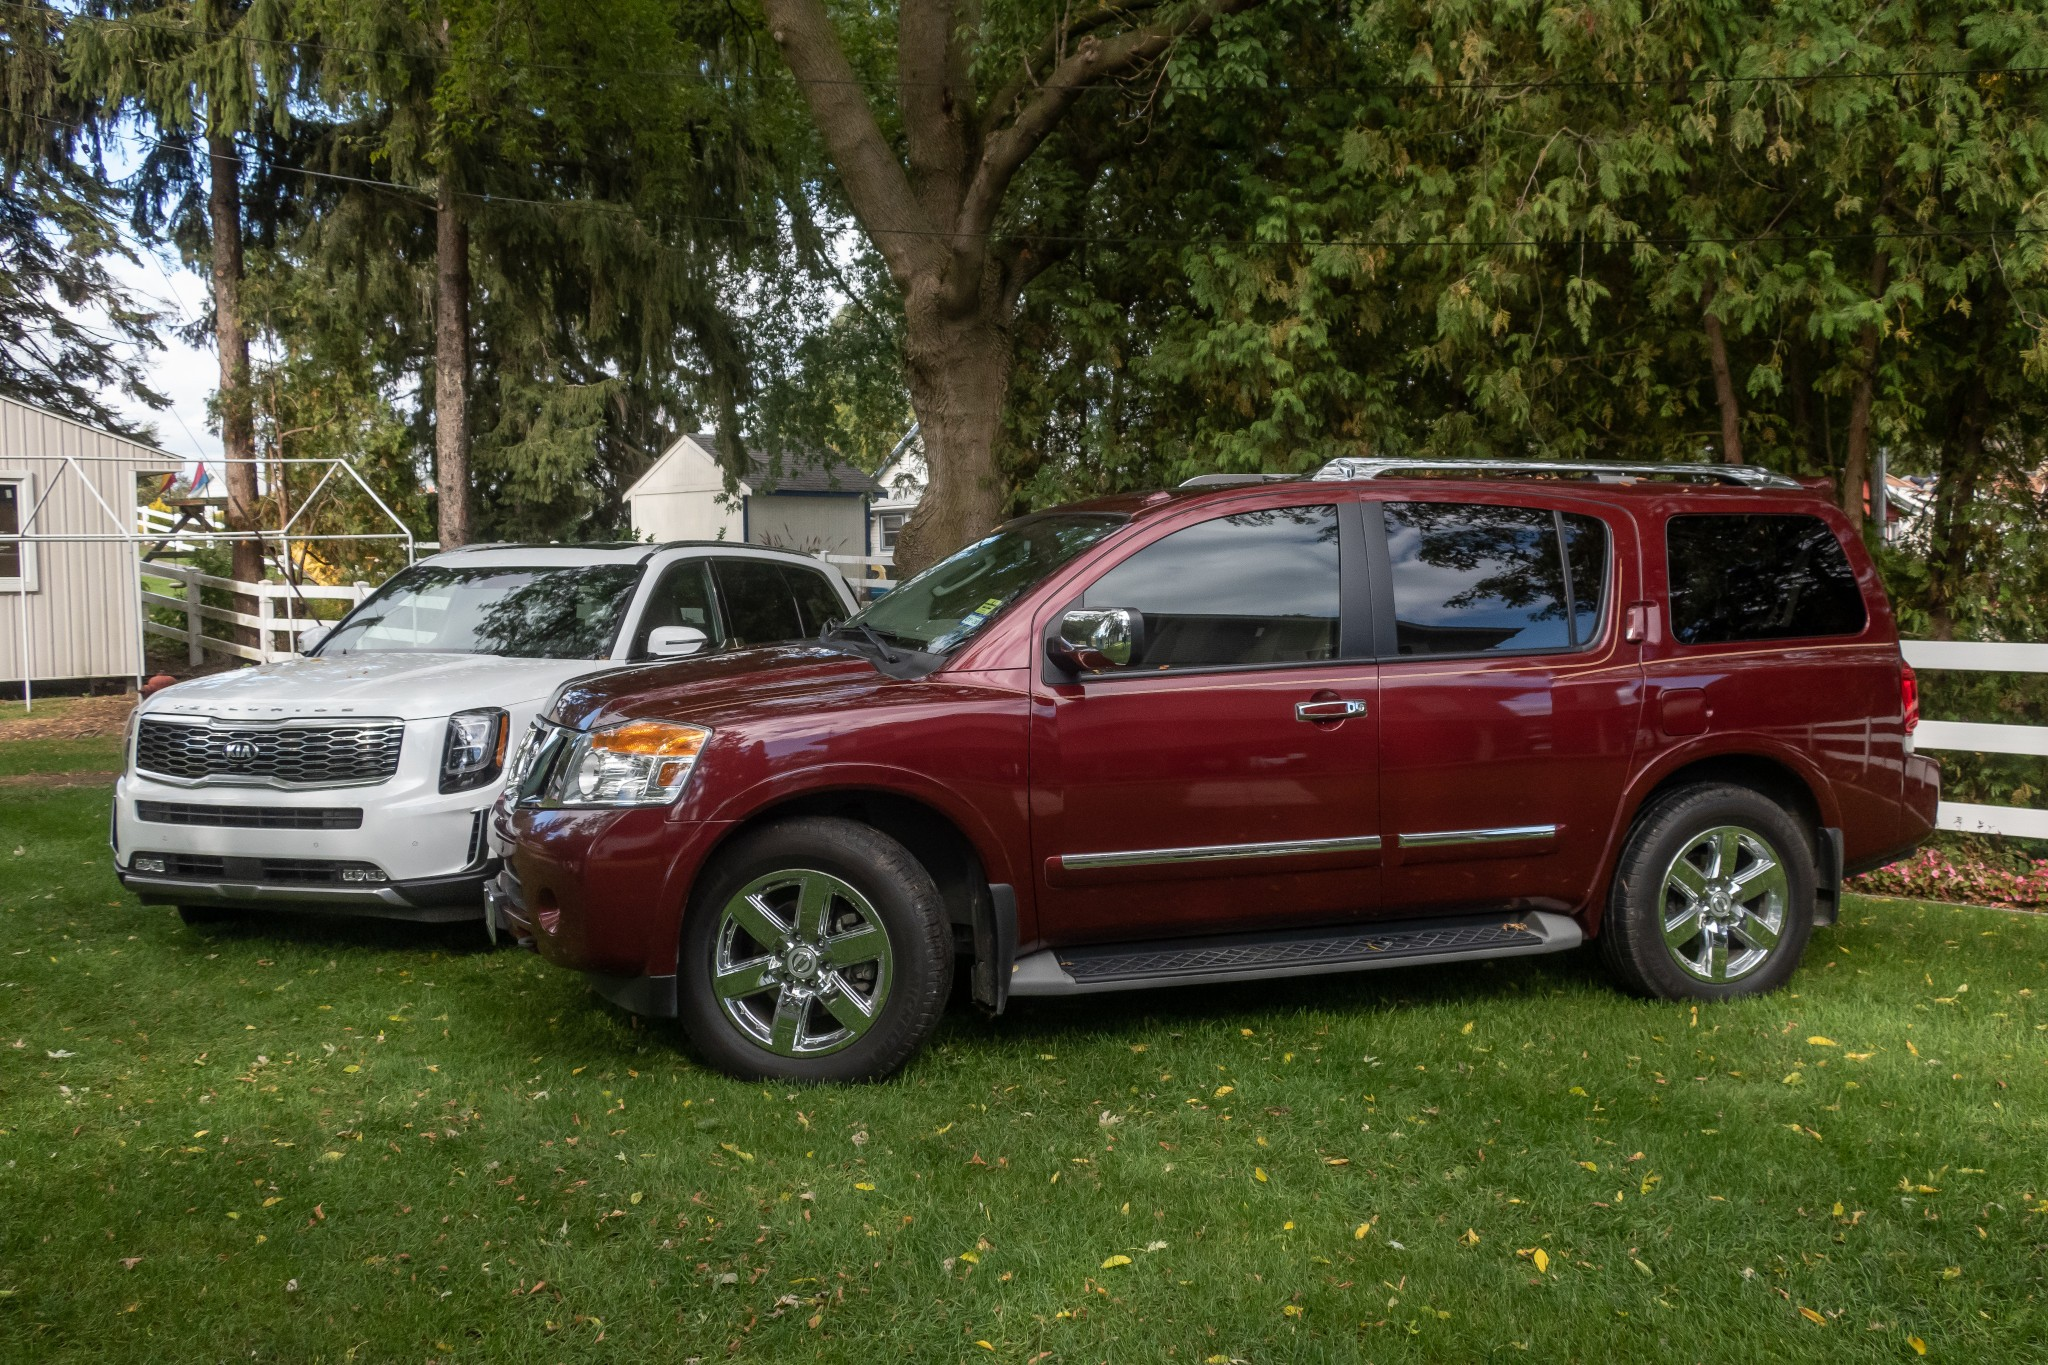 nissan-armada-and-kia-telluride-untitled-2020-07-angle--exterior--front--red--white.jpg